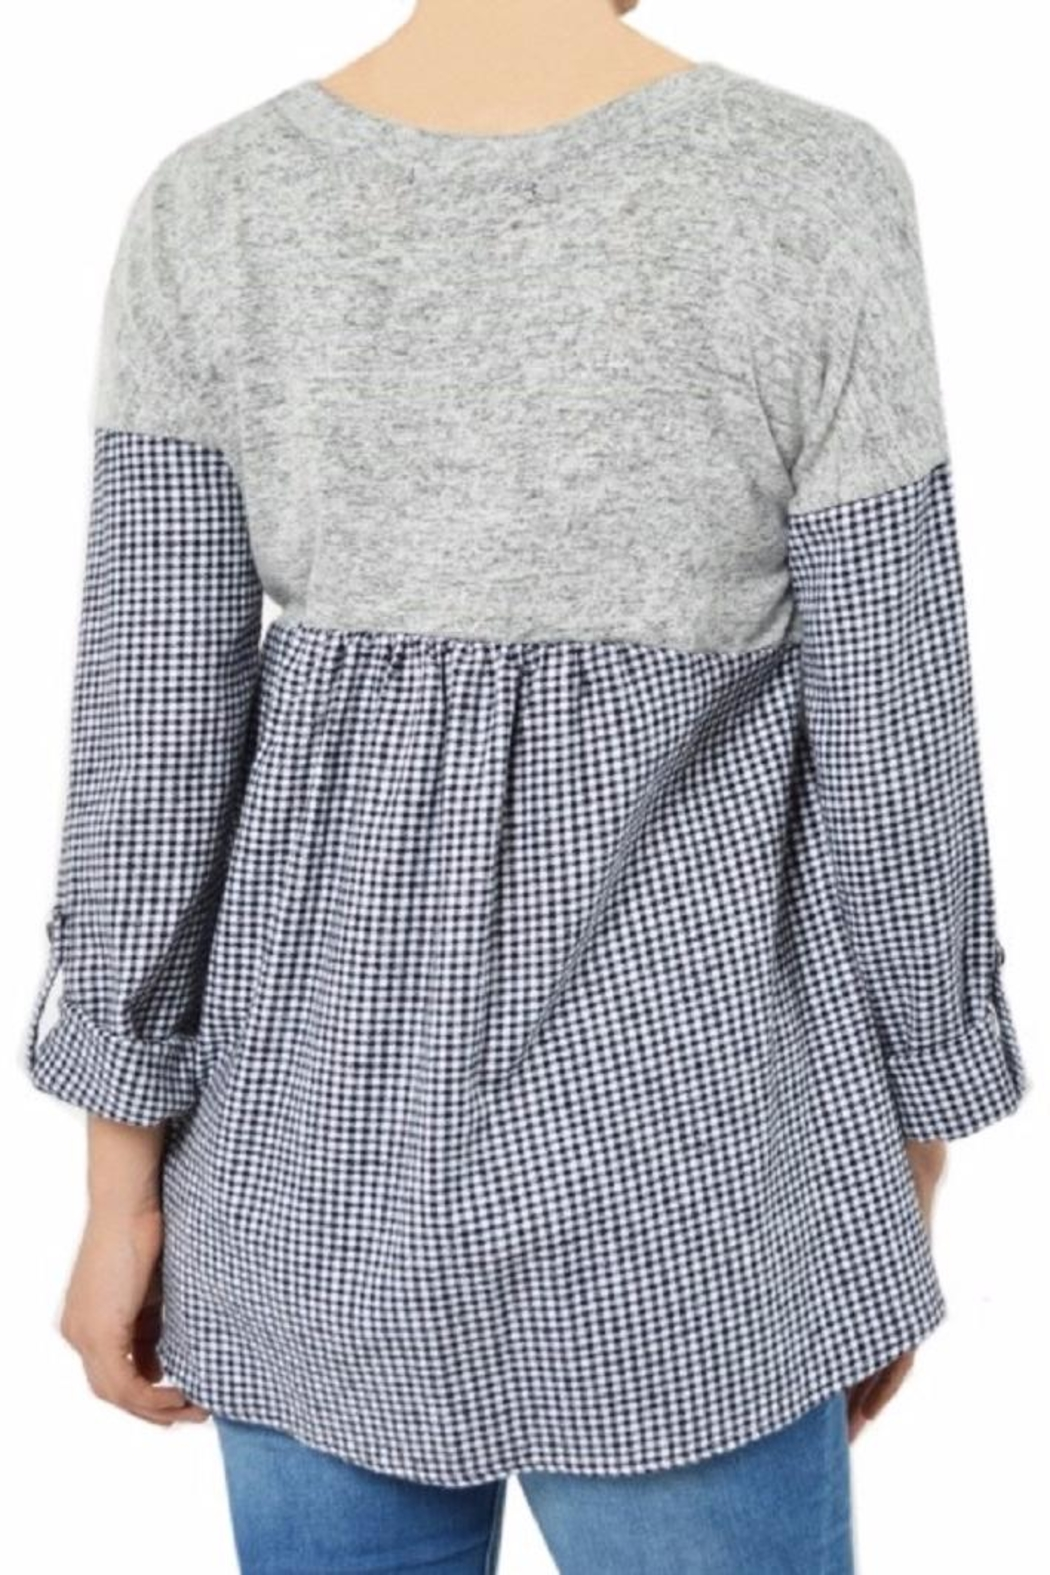 Potter's Pot Layered Check Top - Side Cropped Image